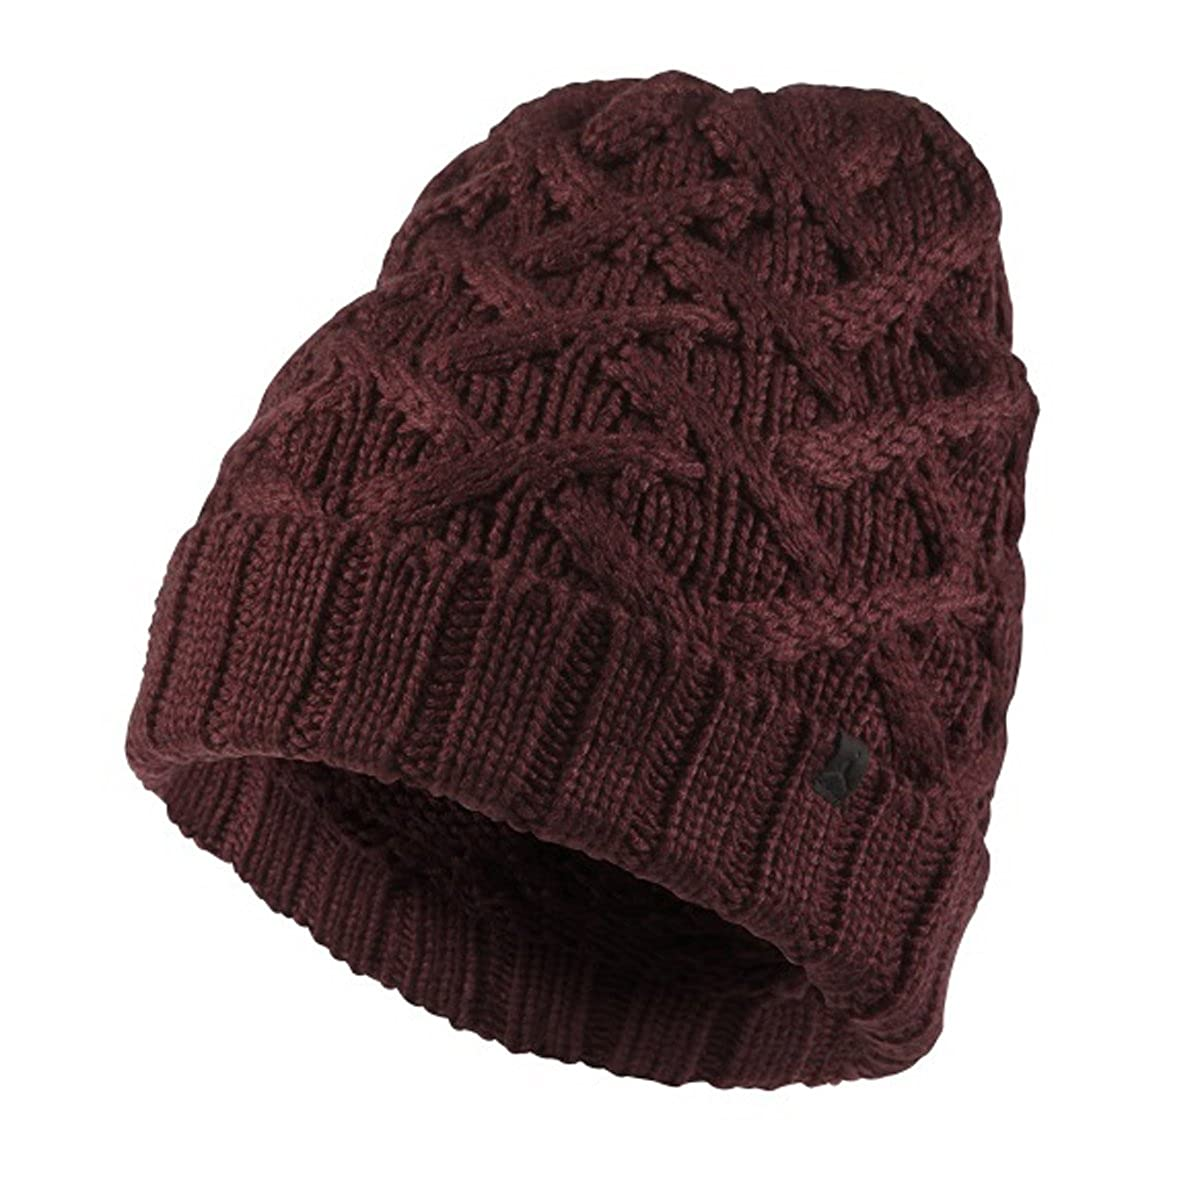 newest collection 061e1 02254 Nike Air Jordan Jumpman Adult Unisex Cable Knit Ski Winter Beanie Cap Night  Maroon Black Applique at Amazon Men s Clothing store